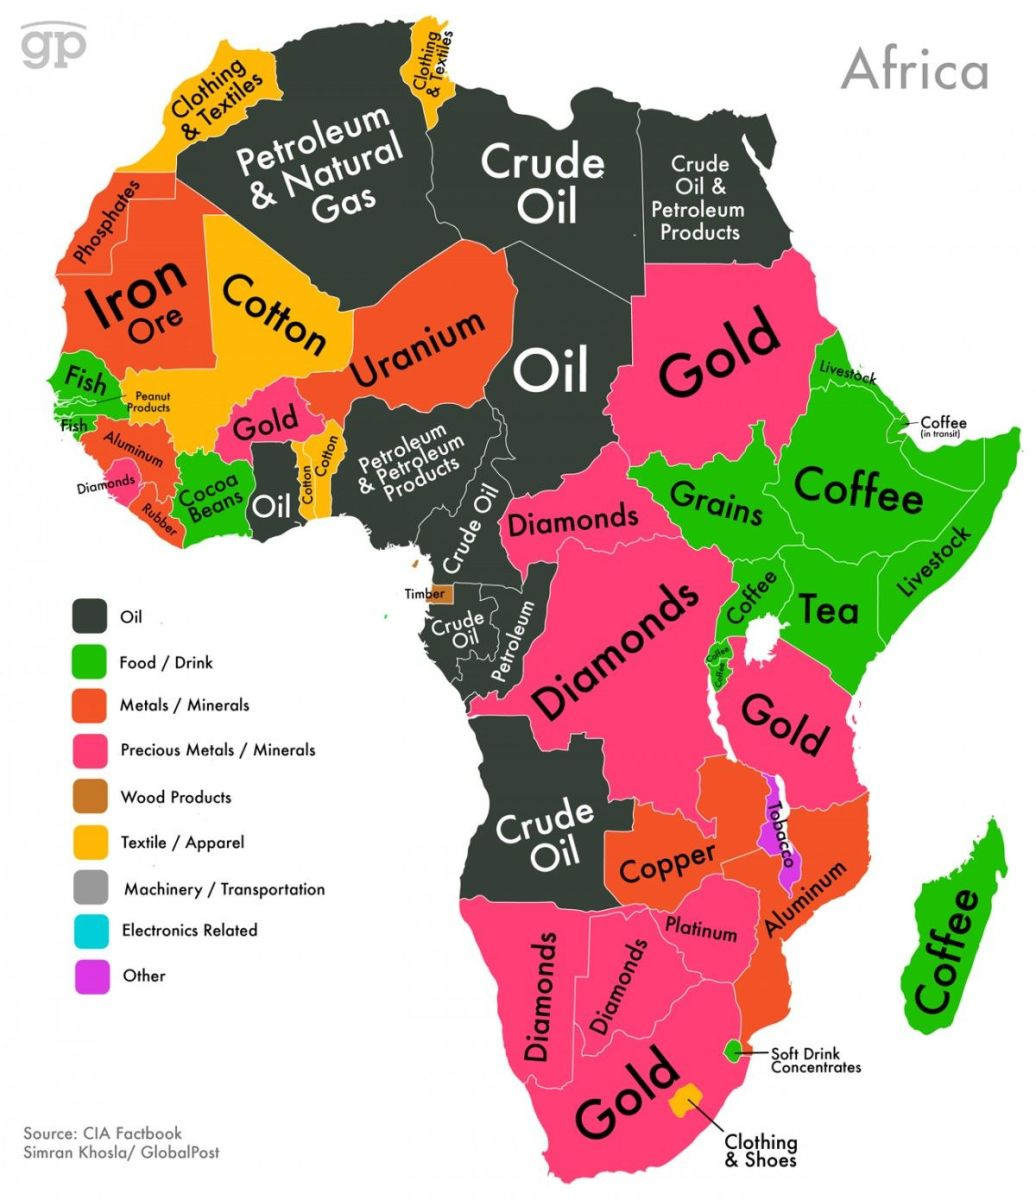 Africa is extremely rich in natural resources, particularly precious metals and oil